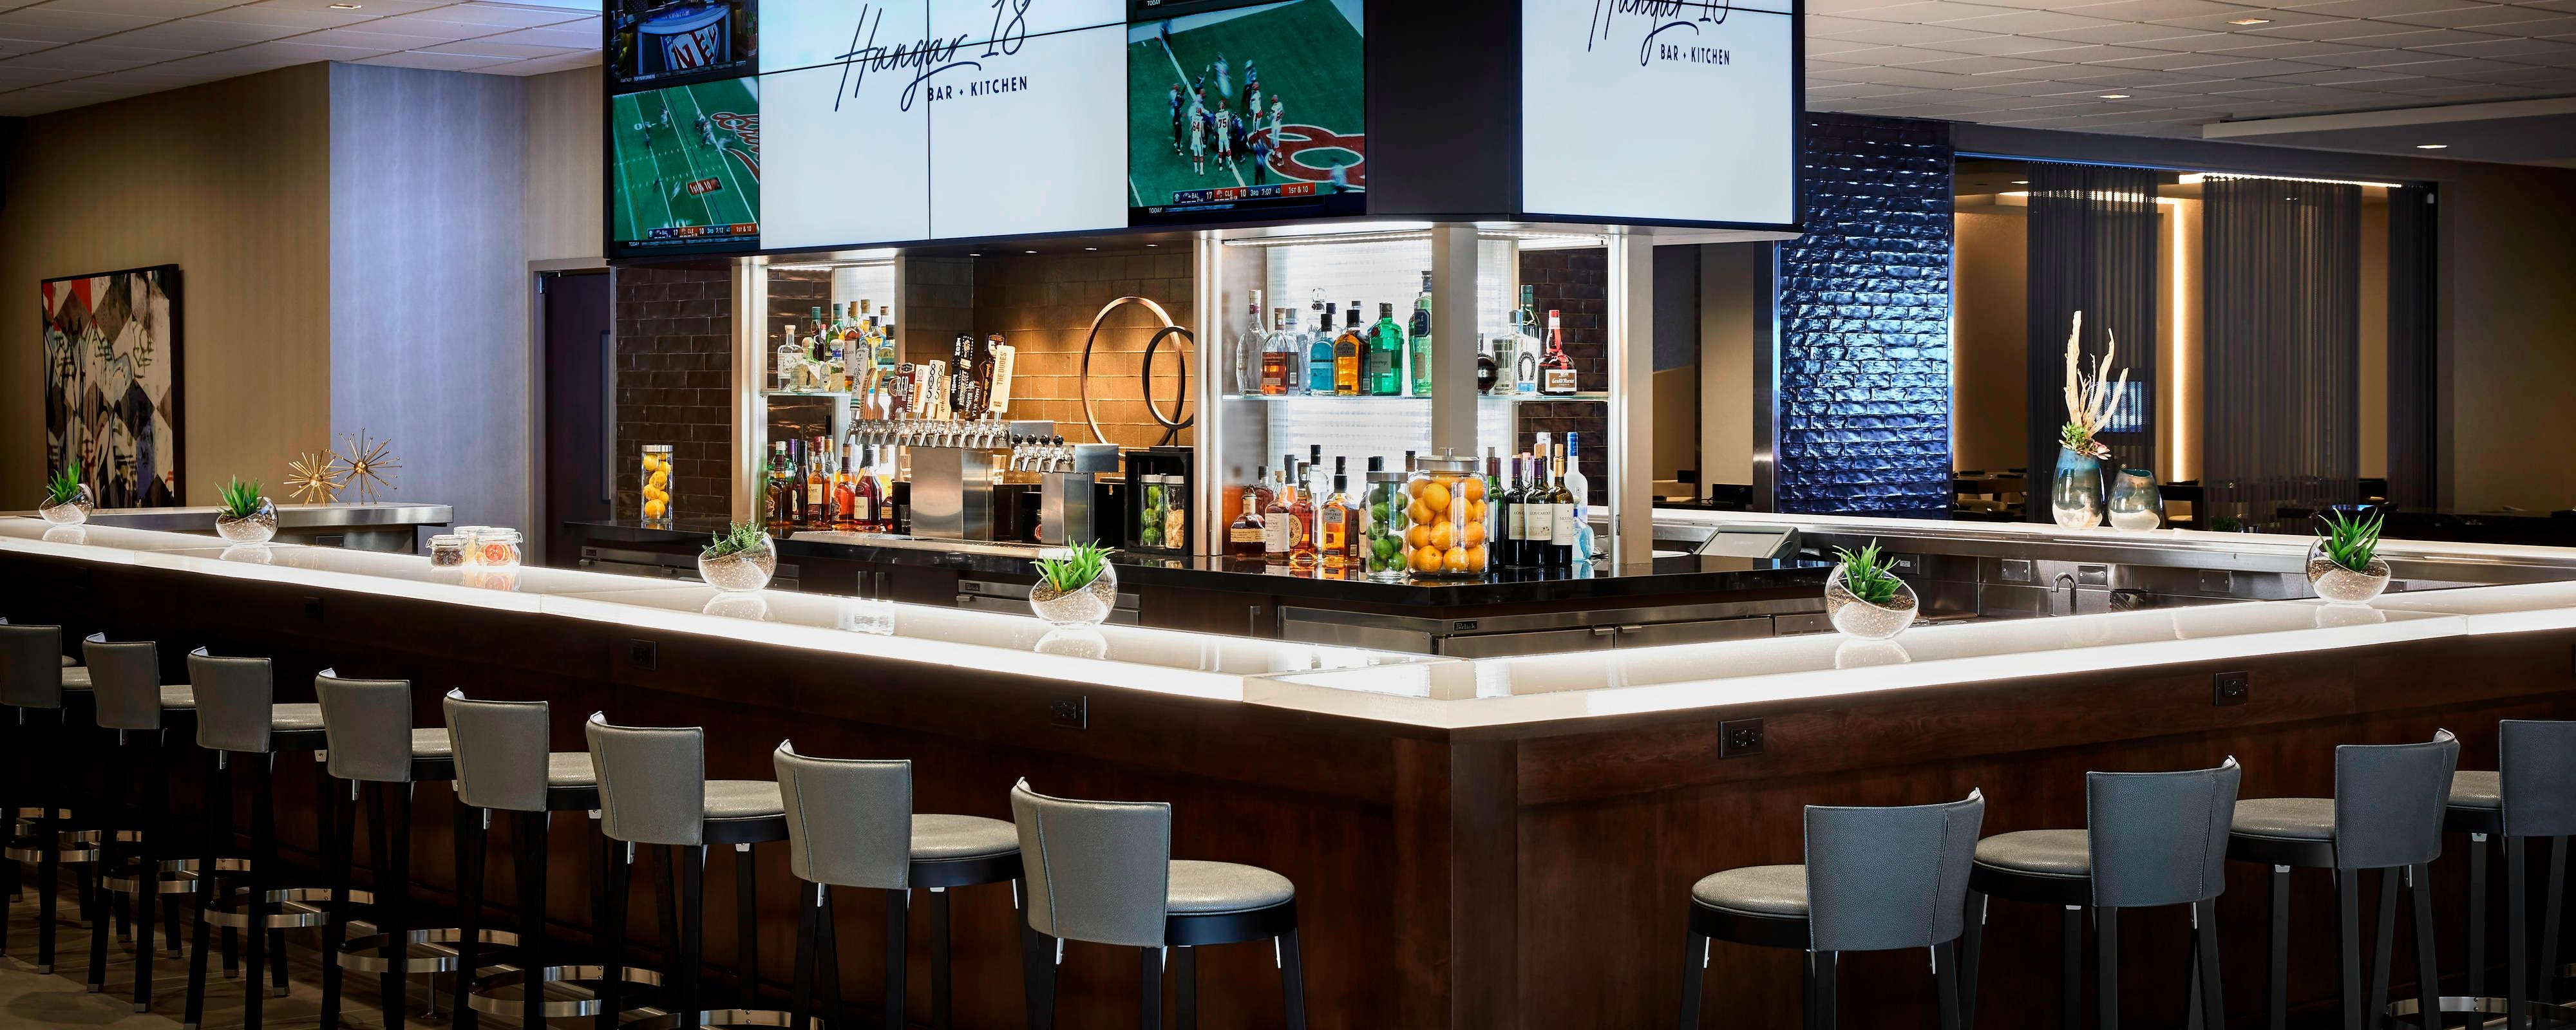 Los Angeles Airport Ca Restaurants Lax Dining